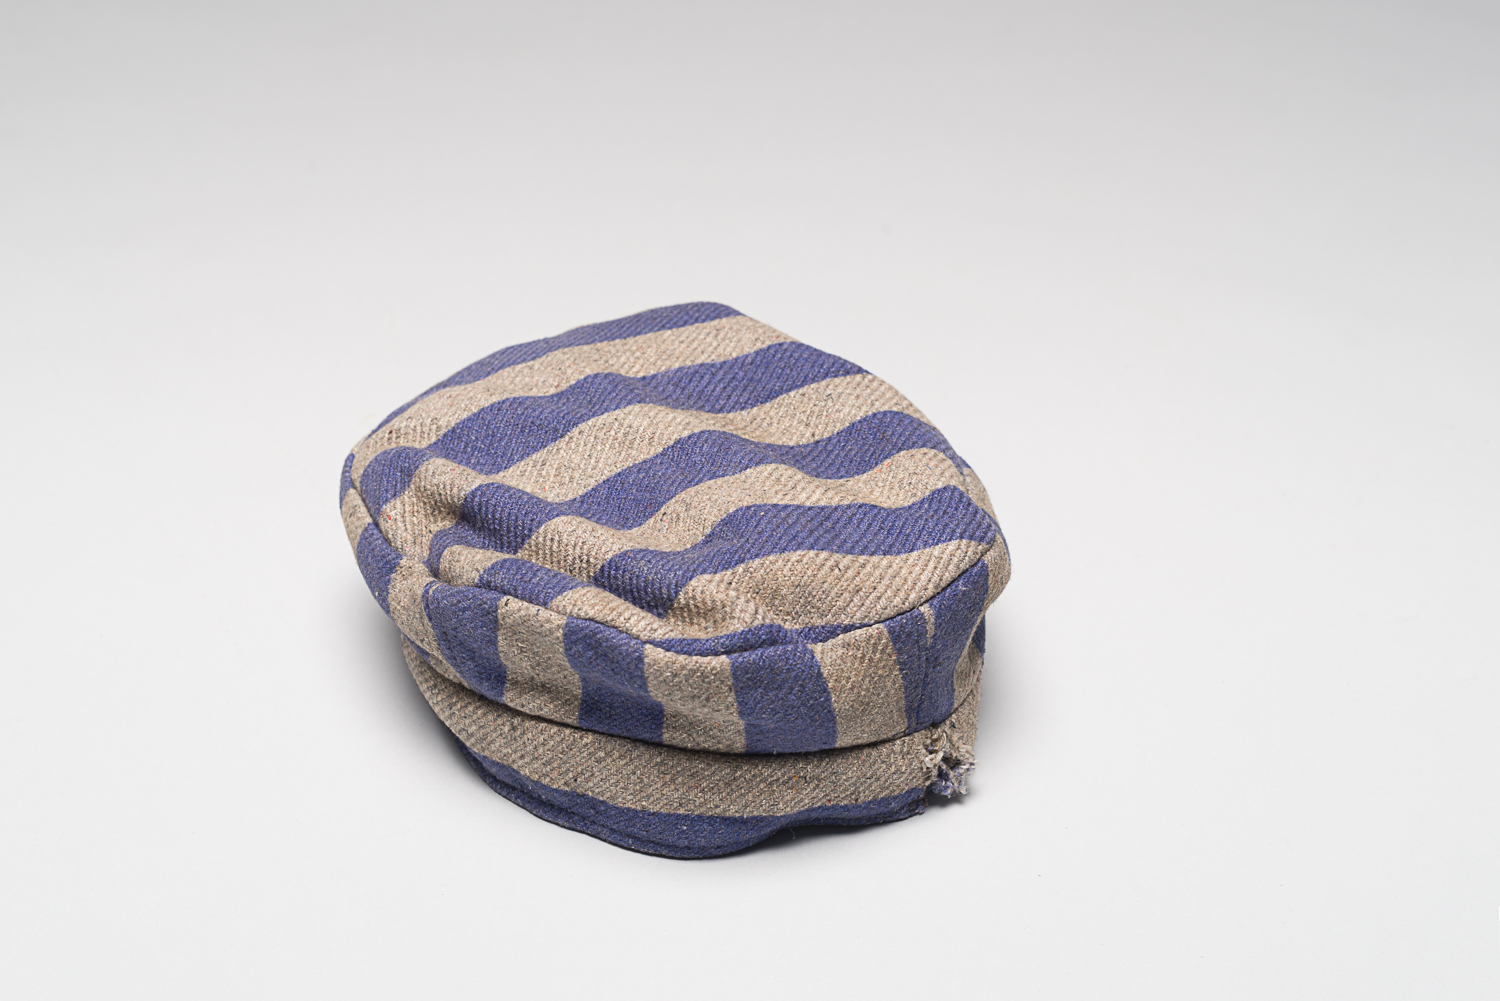 Cap from Louis Miller's uniform when he was a prisoner of the Auschwitz-Birkenau concentration camp.